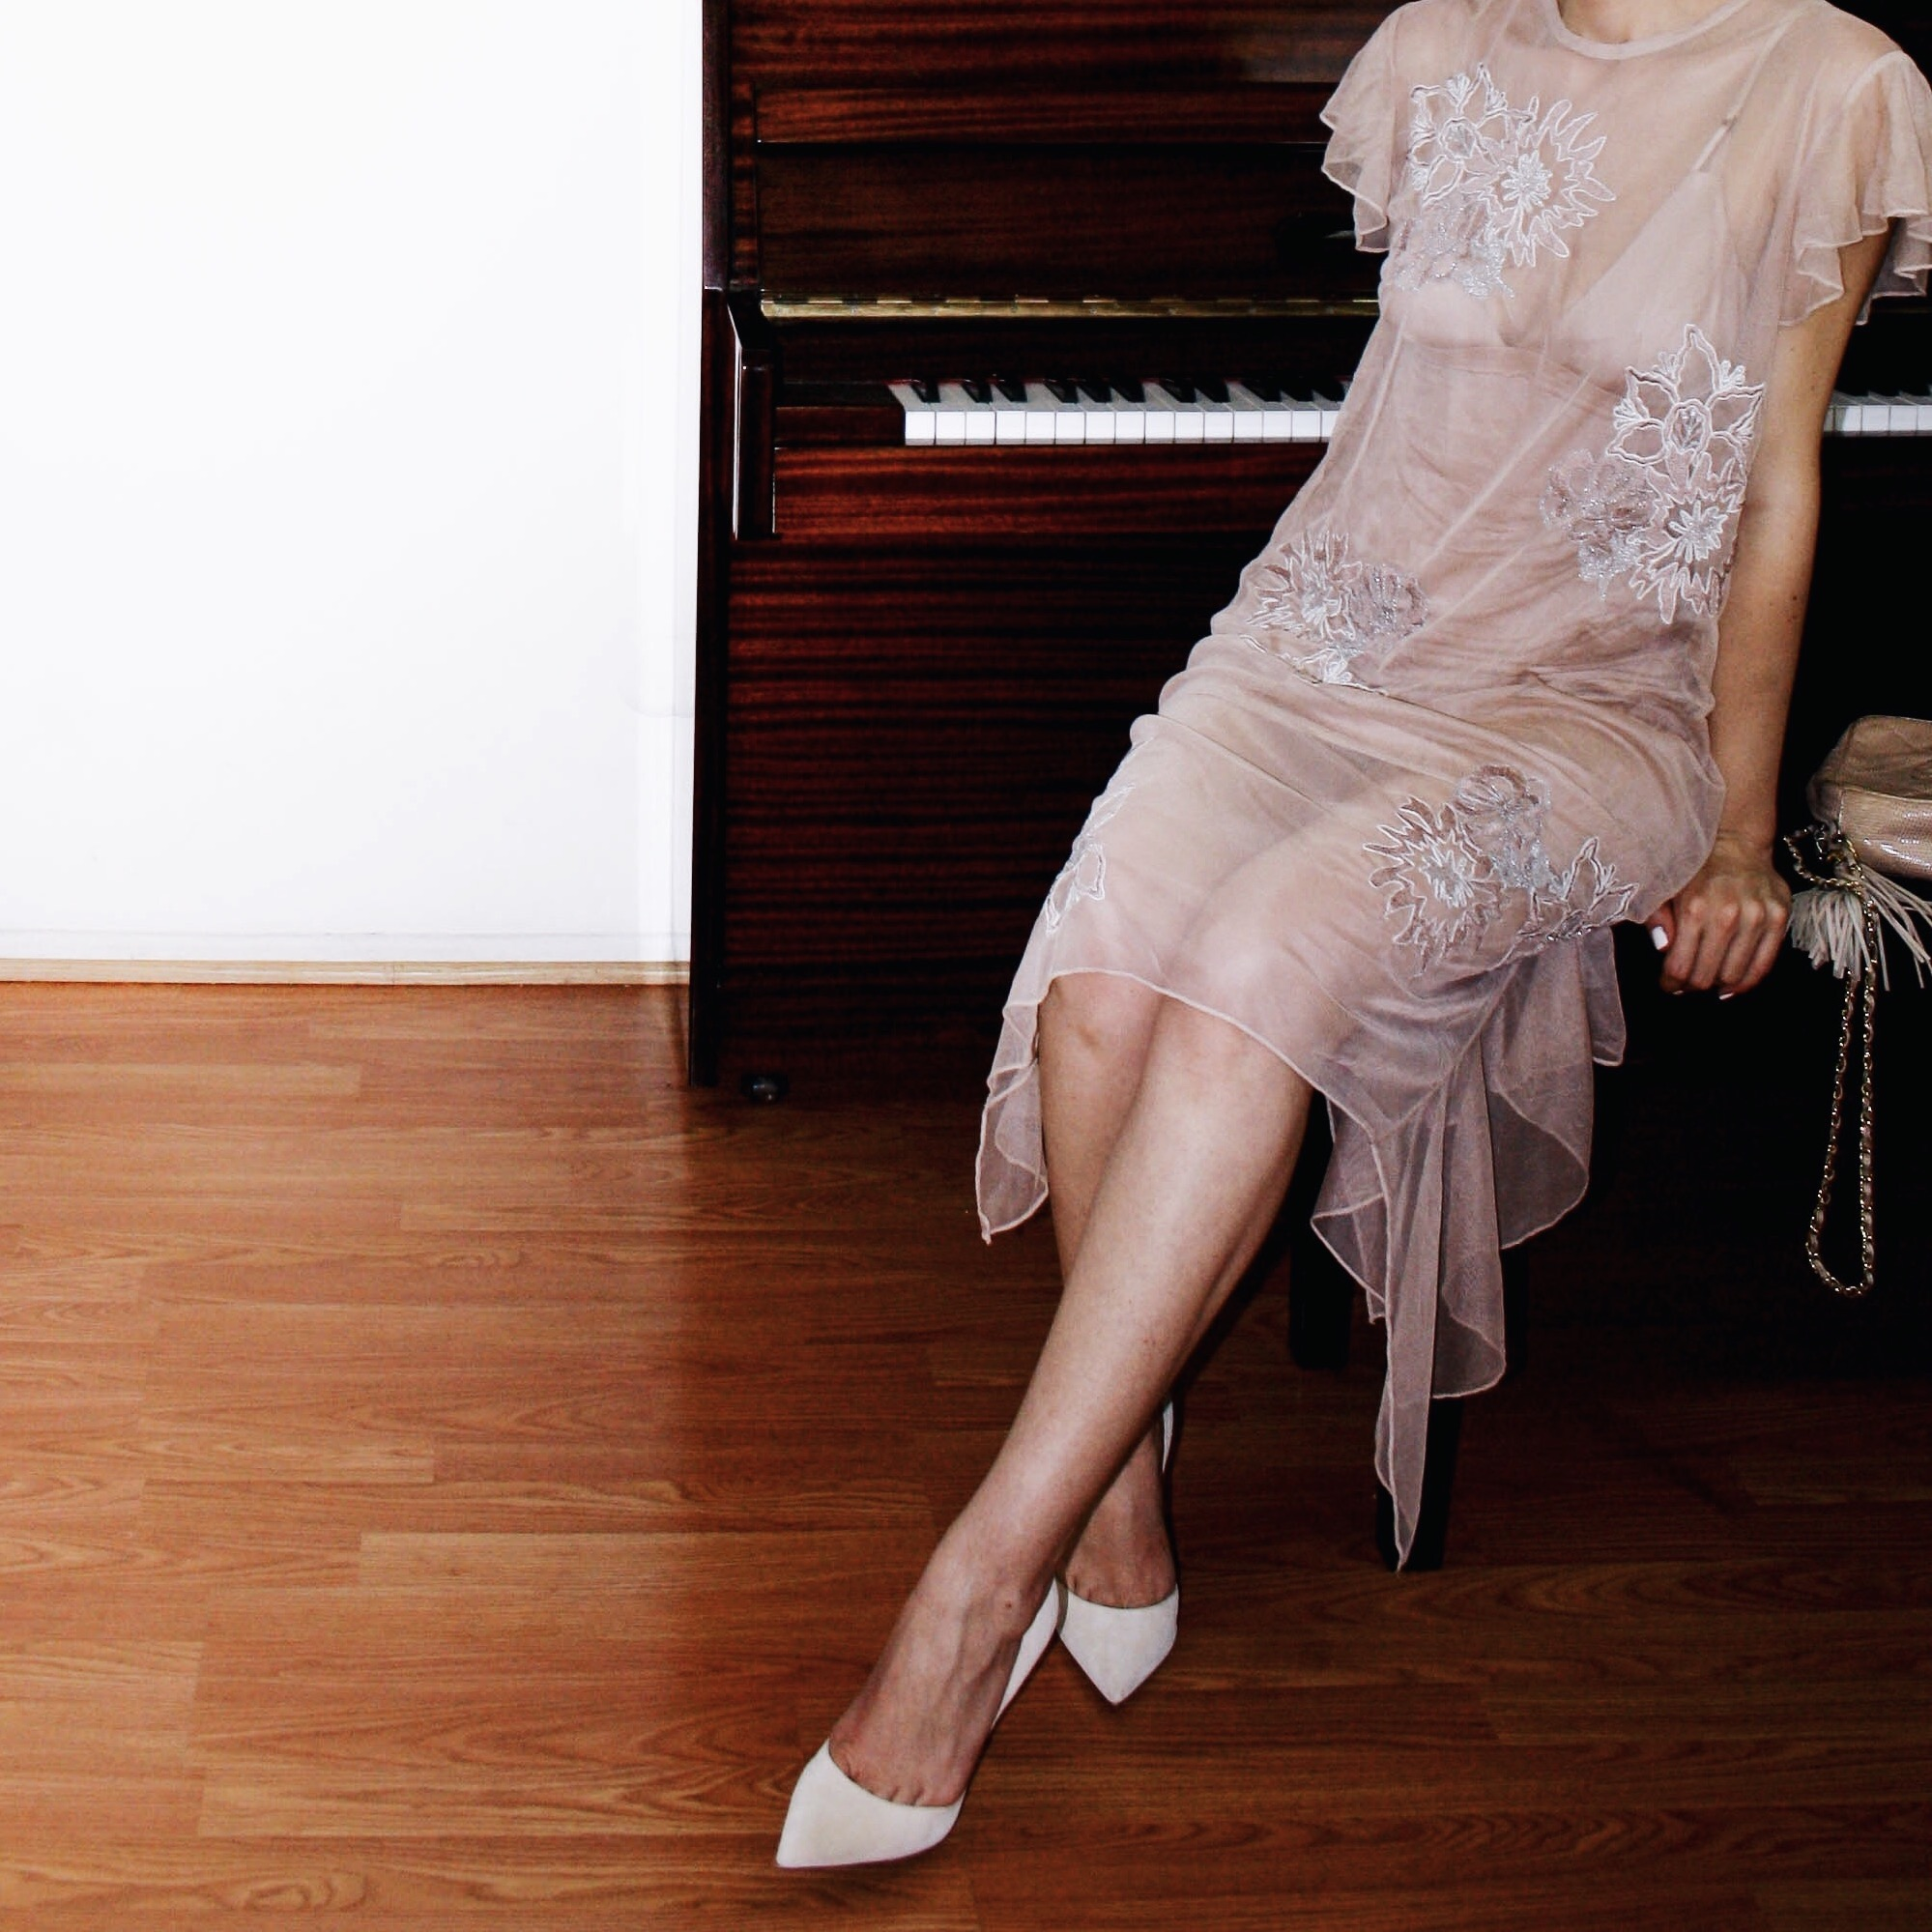 zara dress tulle naked dress embroidery chanel bag suede shoes giambattista valli 8